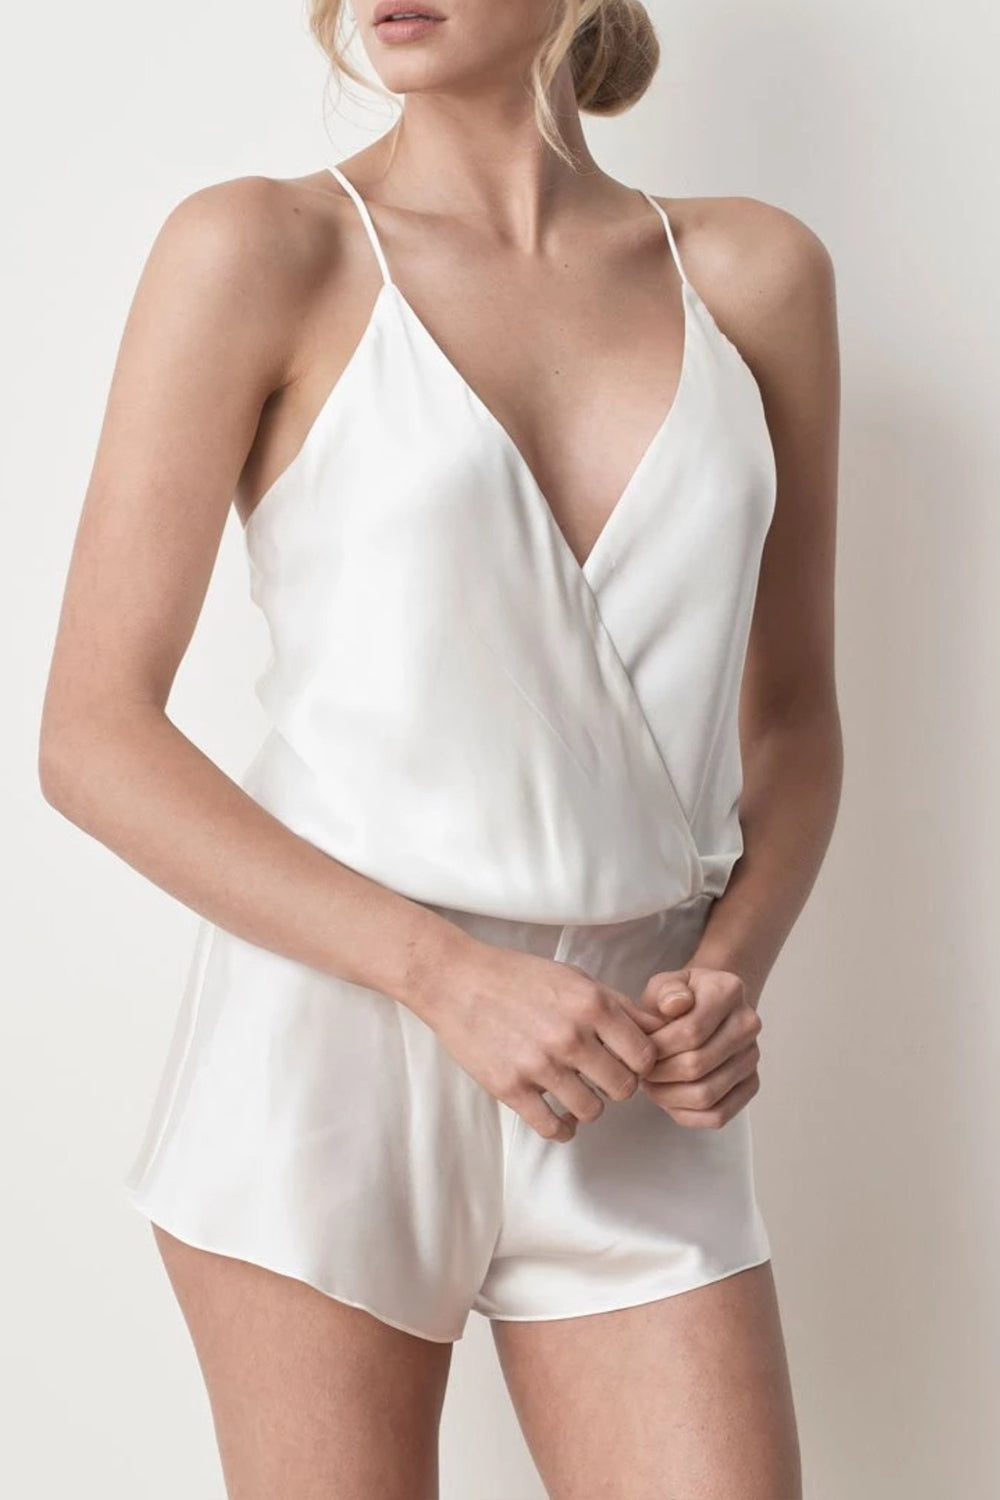 MS KENSINGTON - Silk Playsuit - Ivory White - Australian Fashion and Accessories Boutique - Faid Store